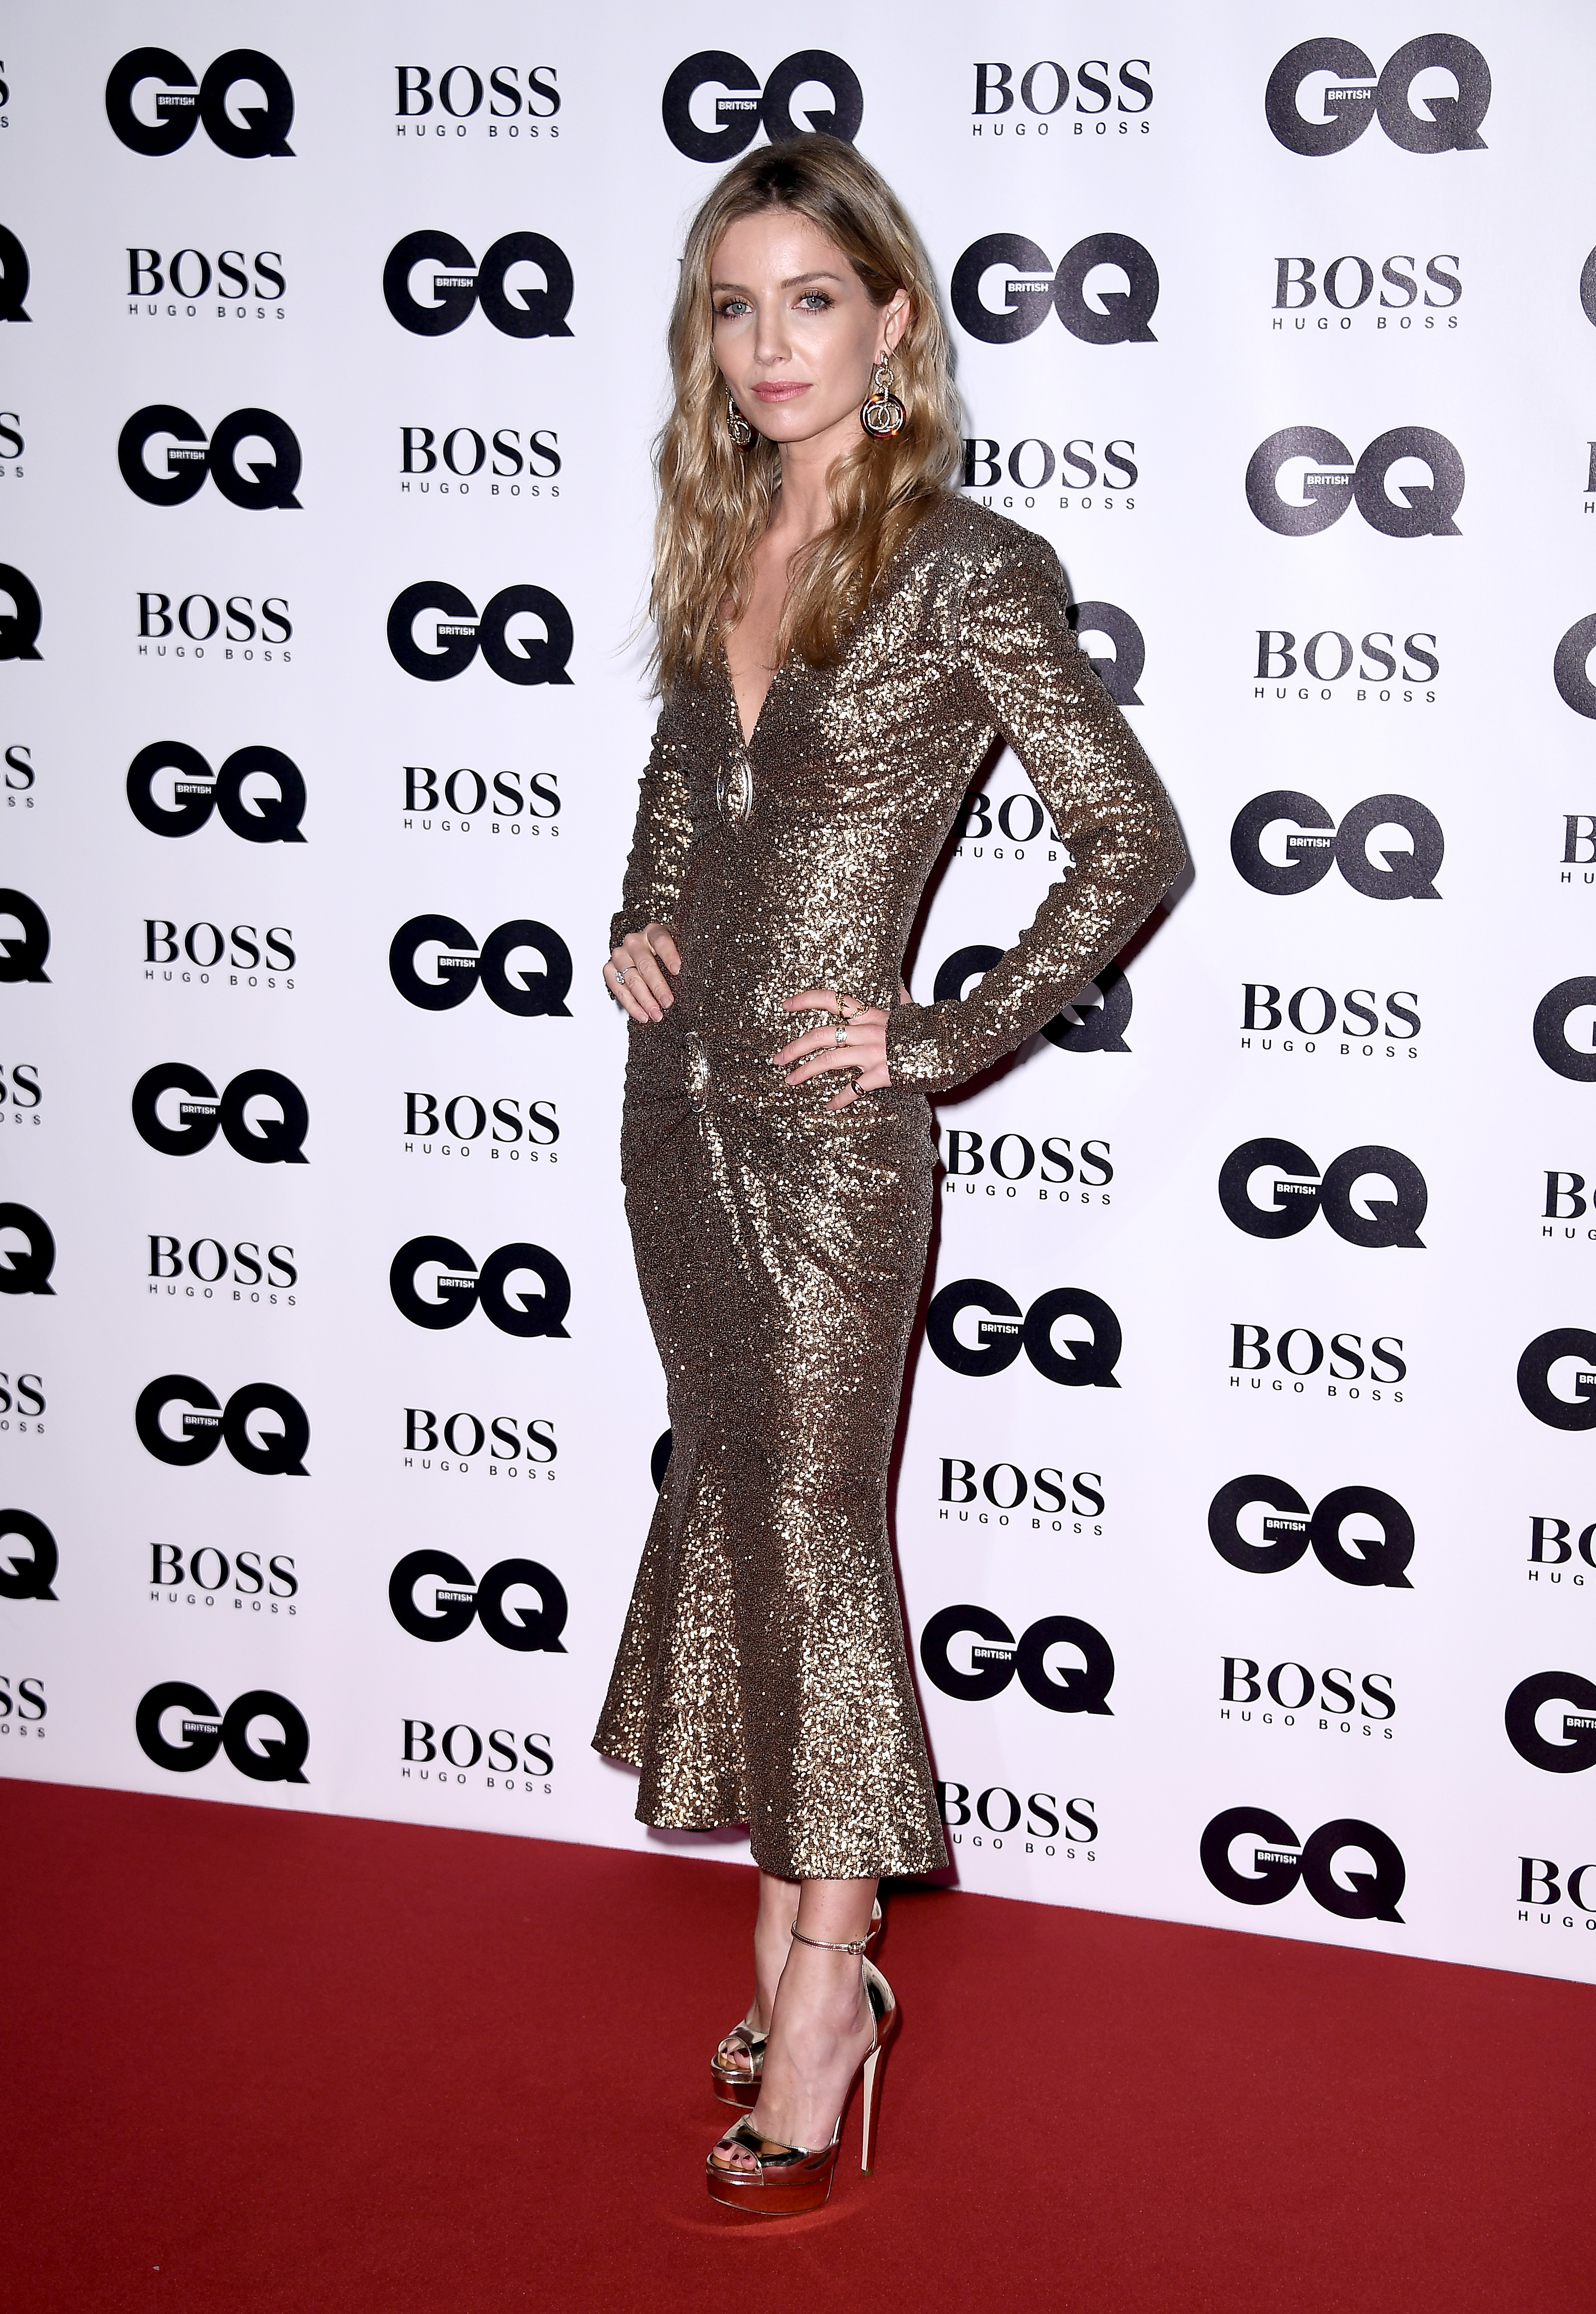 LONDON, ENGLAND - SEPTEMBER 05:  Annabelle Wallis attends the GQ Men Of The Year Awards at the Tate Modern on September 5, 2017 in London, England.  (Photo by Gareth Cattermole/Getty Images)